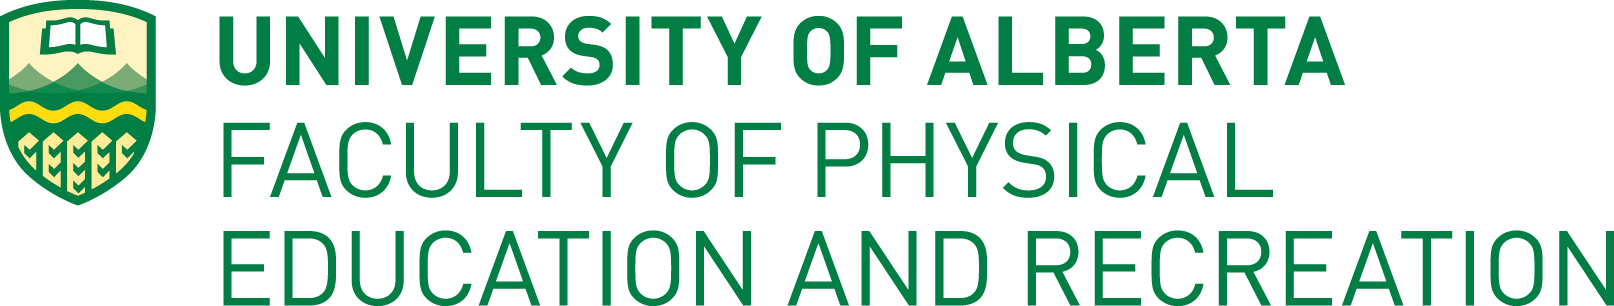 University of Alberta | Faculty of Physical Education and Recreation